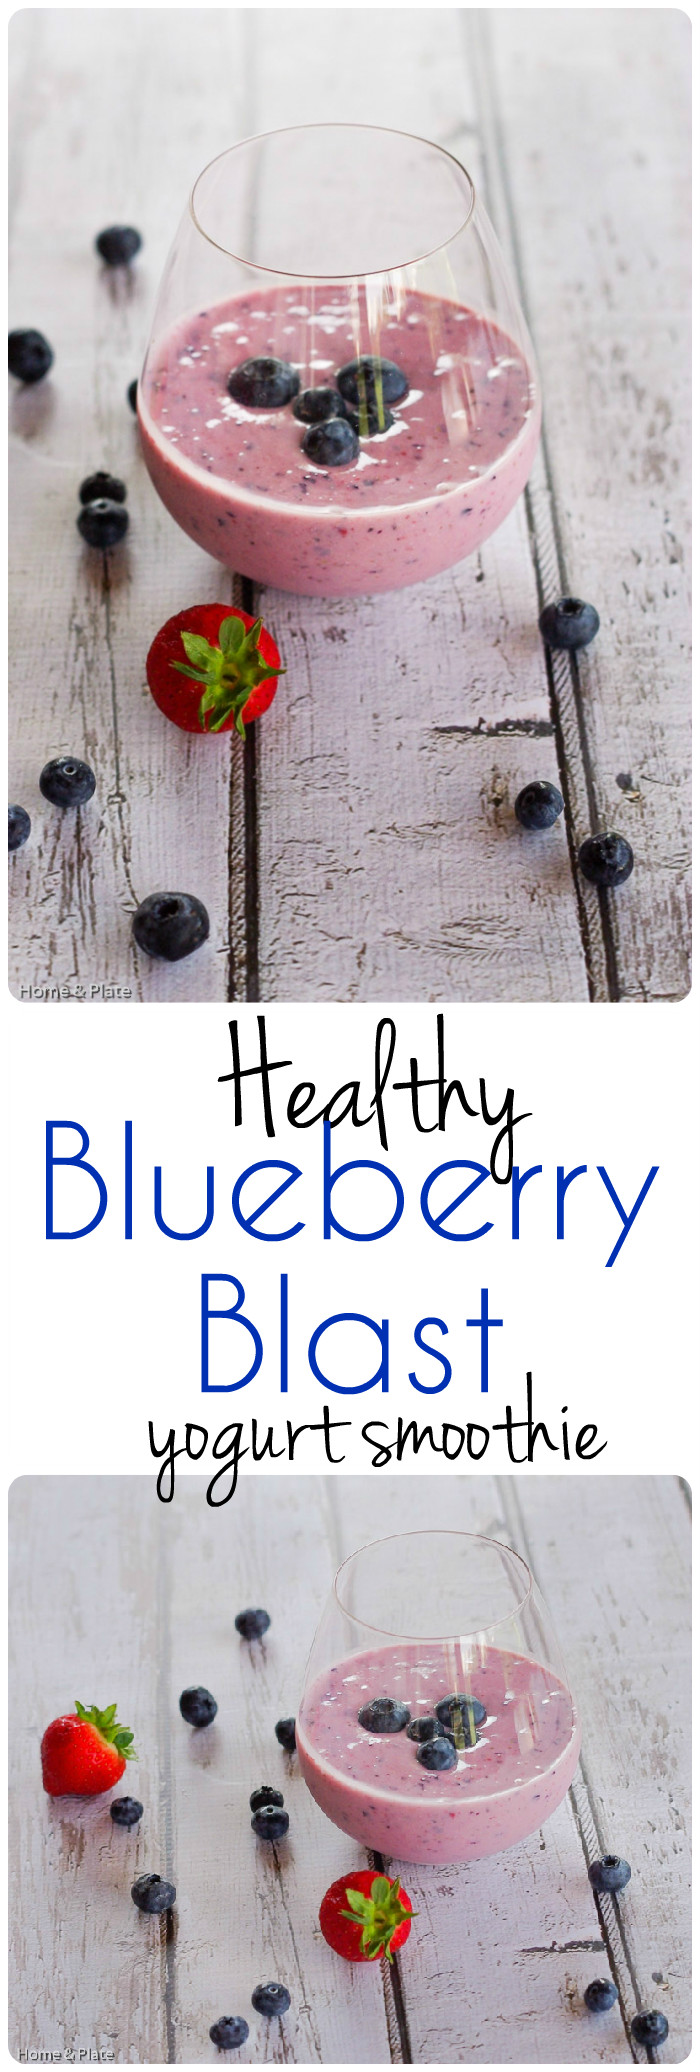 Healthy Blueberry Blast Yogurt Smoothie | Home & Plate | www.homeandplate.com | This smoothie recipe is perfect for busy mornings.